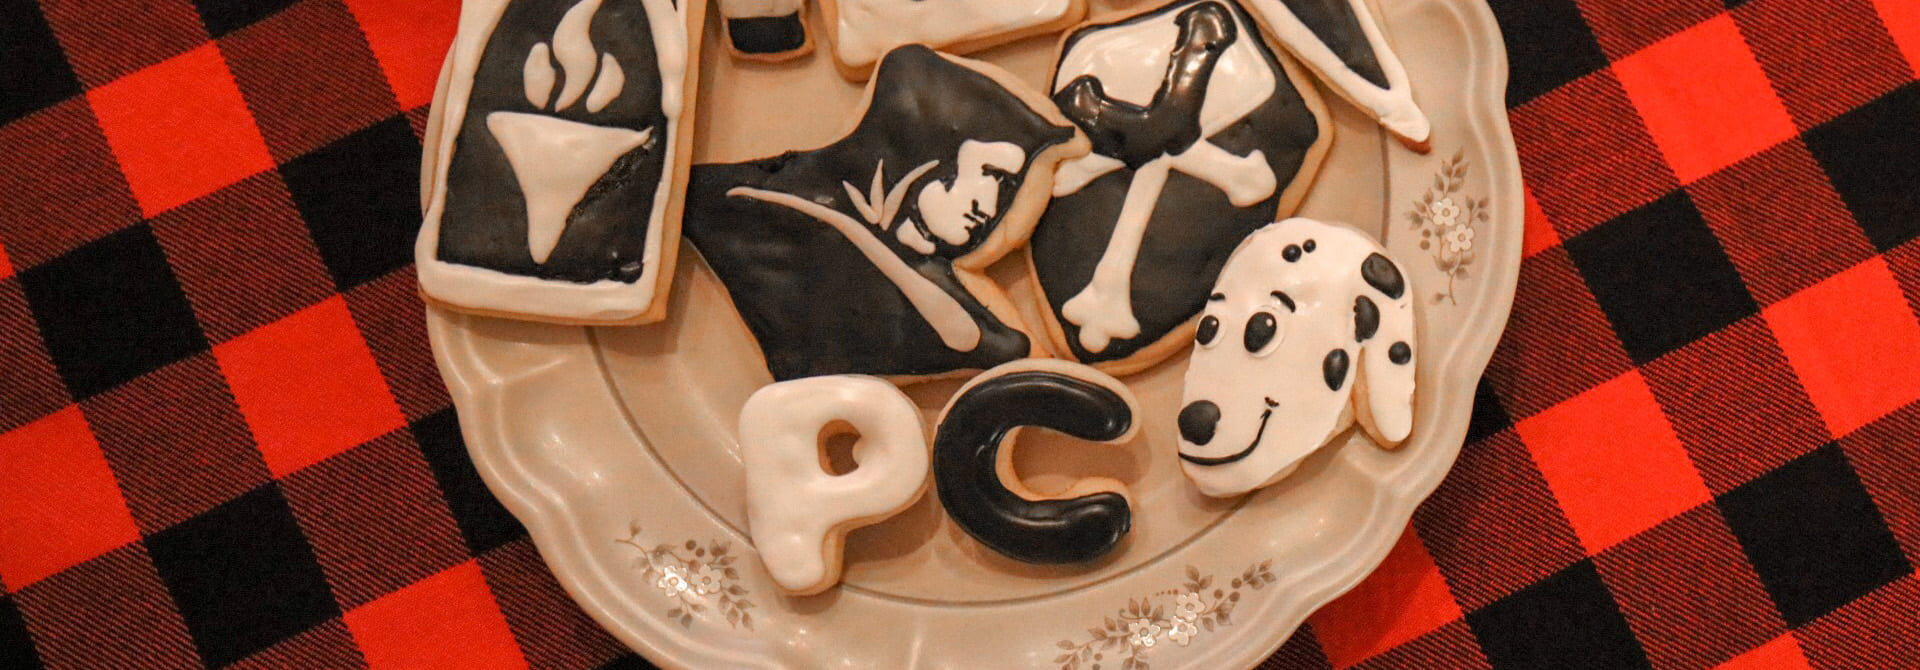 Office of the Registrar PC Cookies